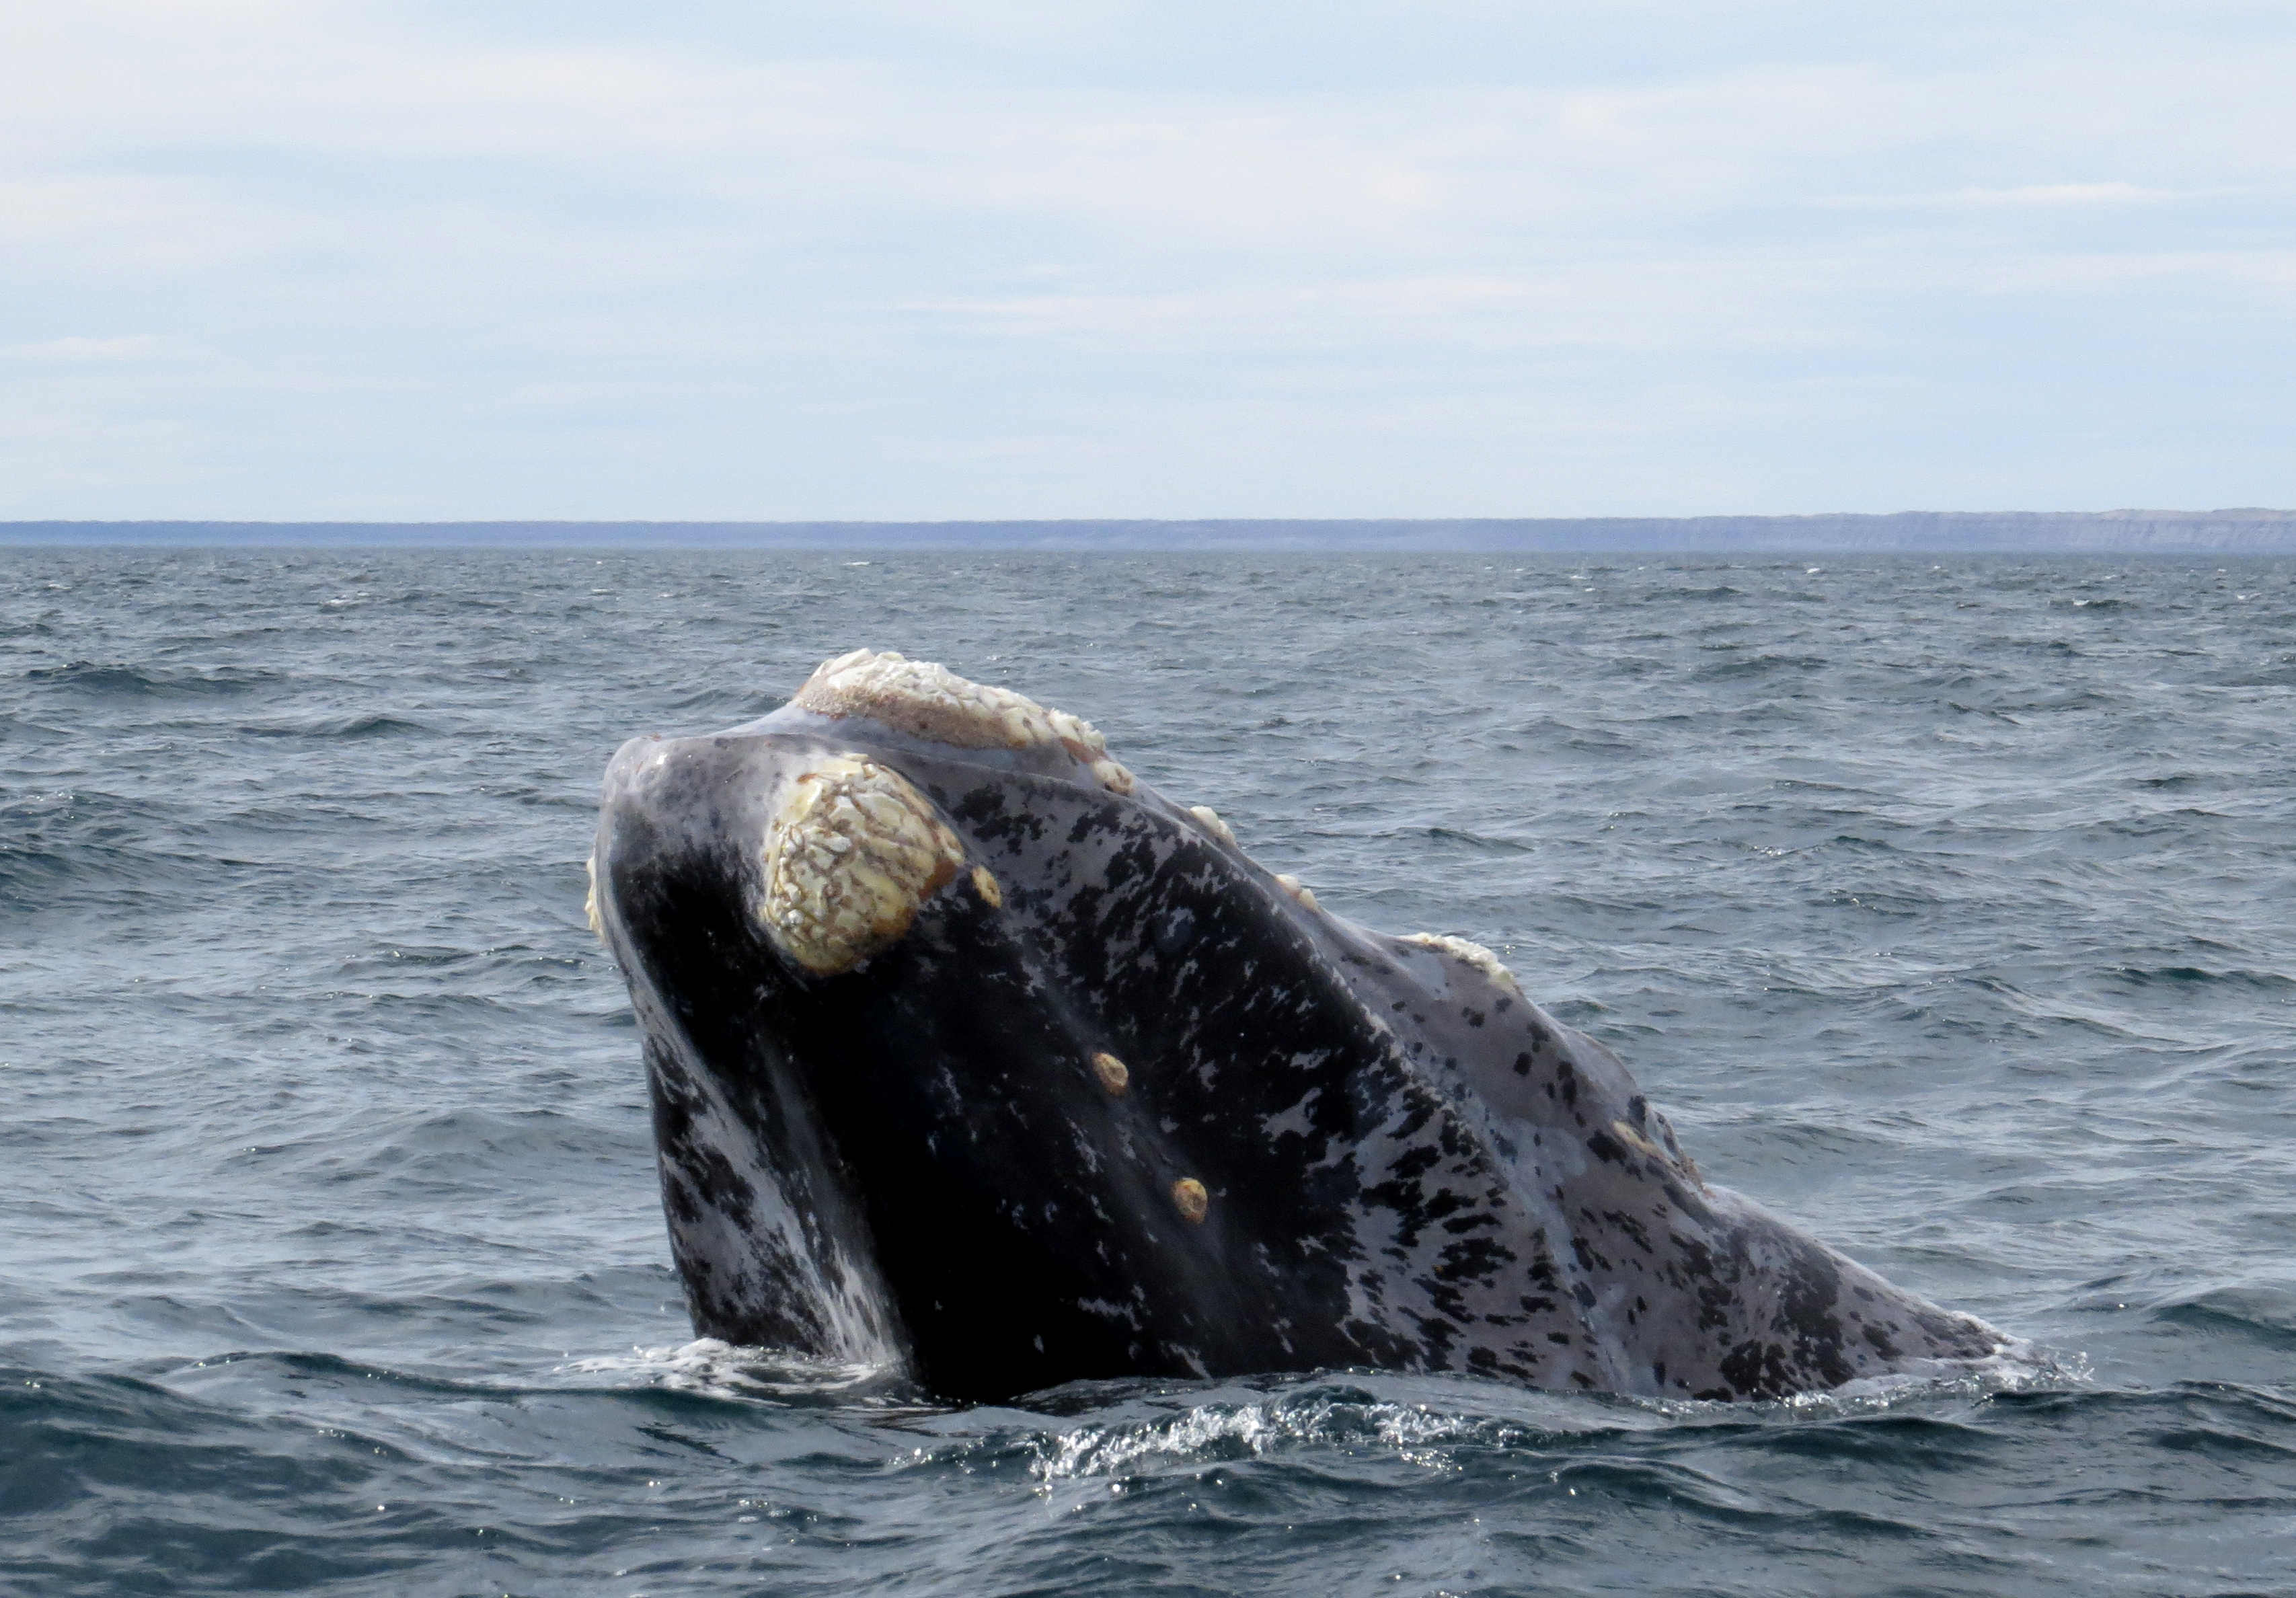 right whale Stretching up to 168 meters (55 feet) long and weighing up to 62 tons (70 tons), the north atlantic right whale is one of the world's largest animals.